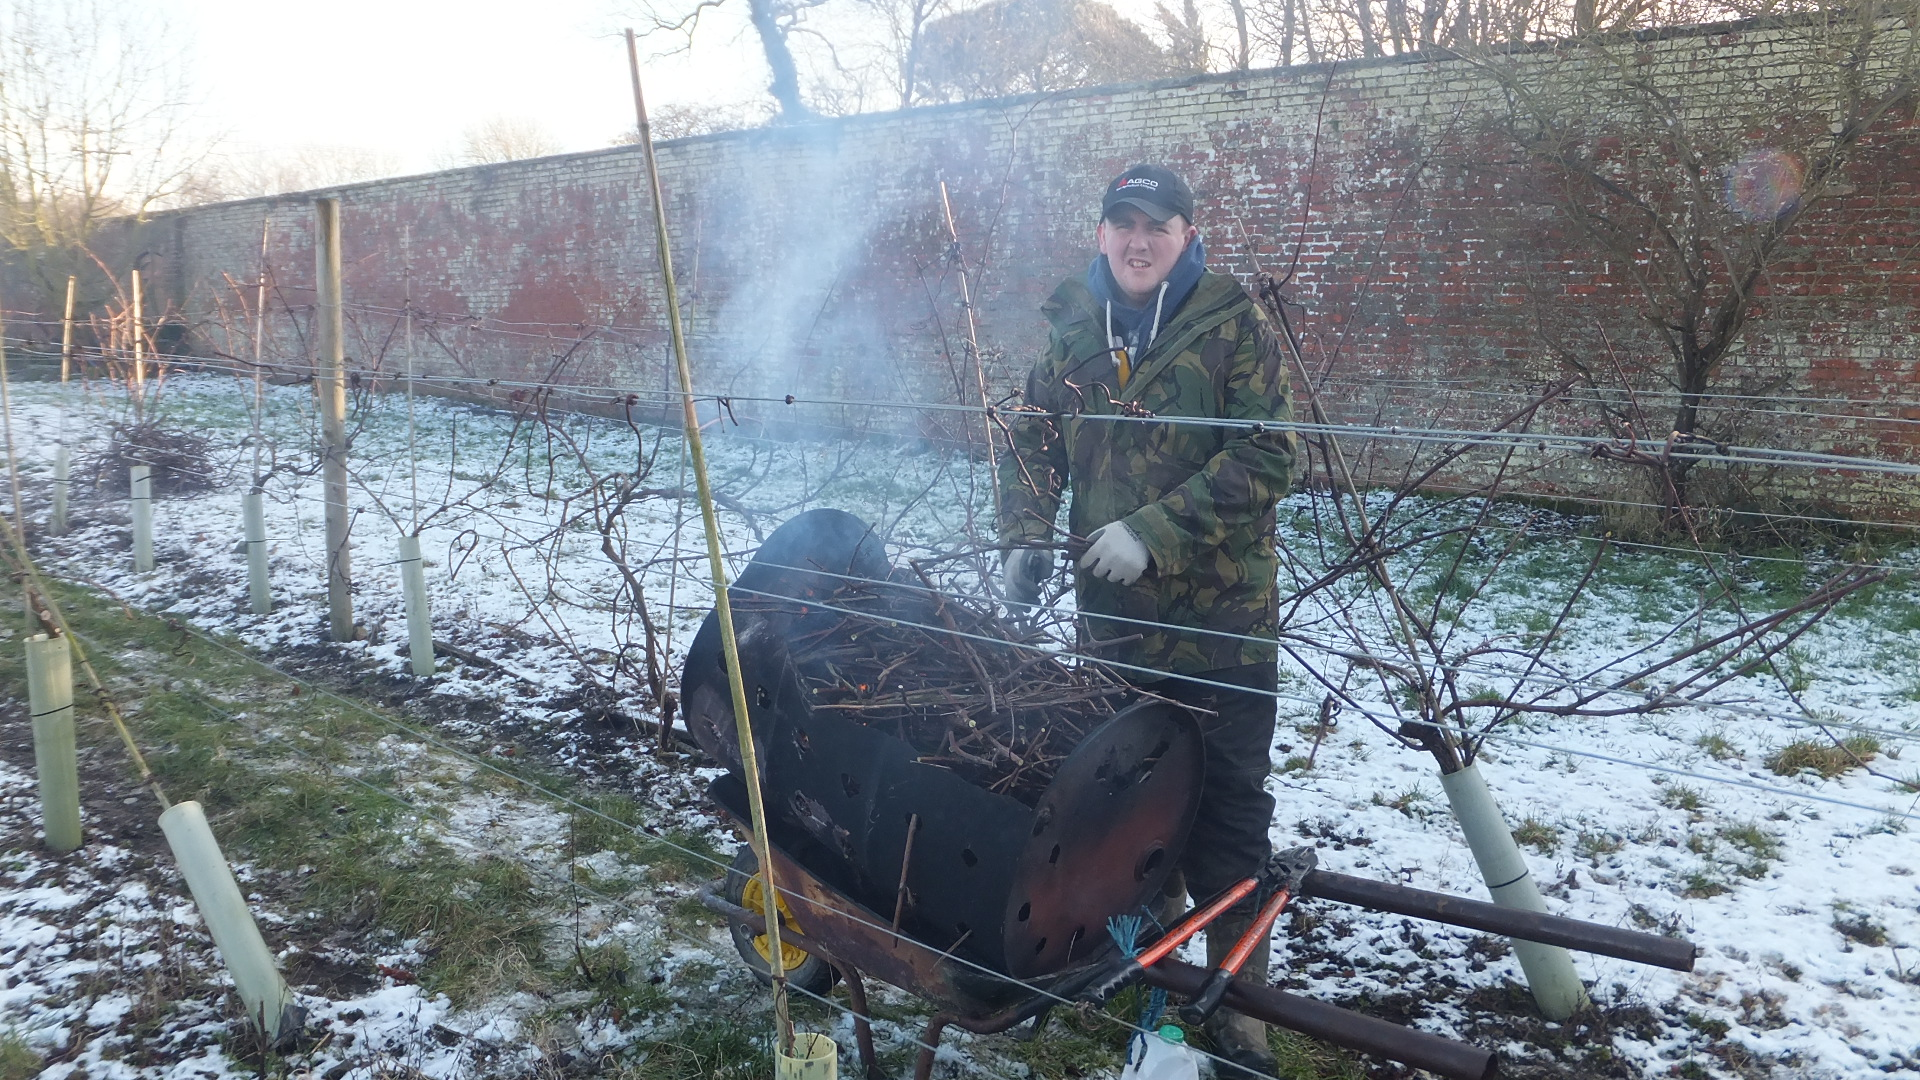 Tom pruning the vines, looking a little chilly.